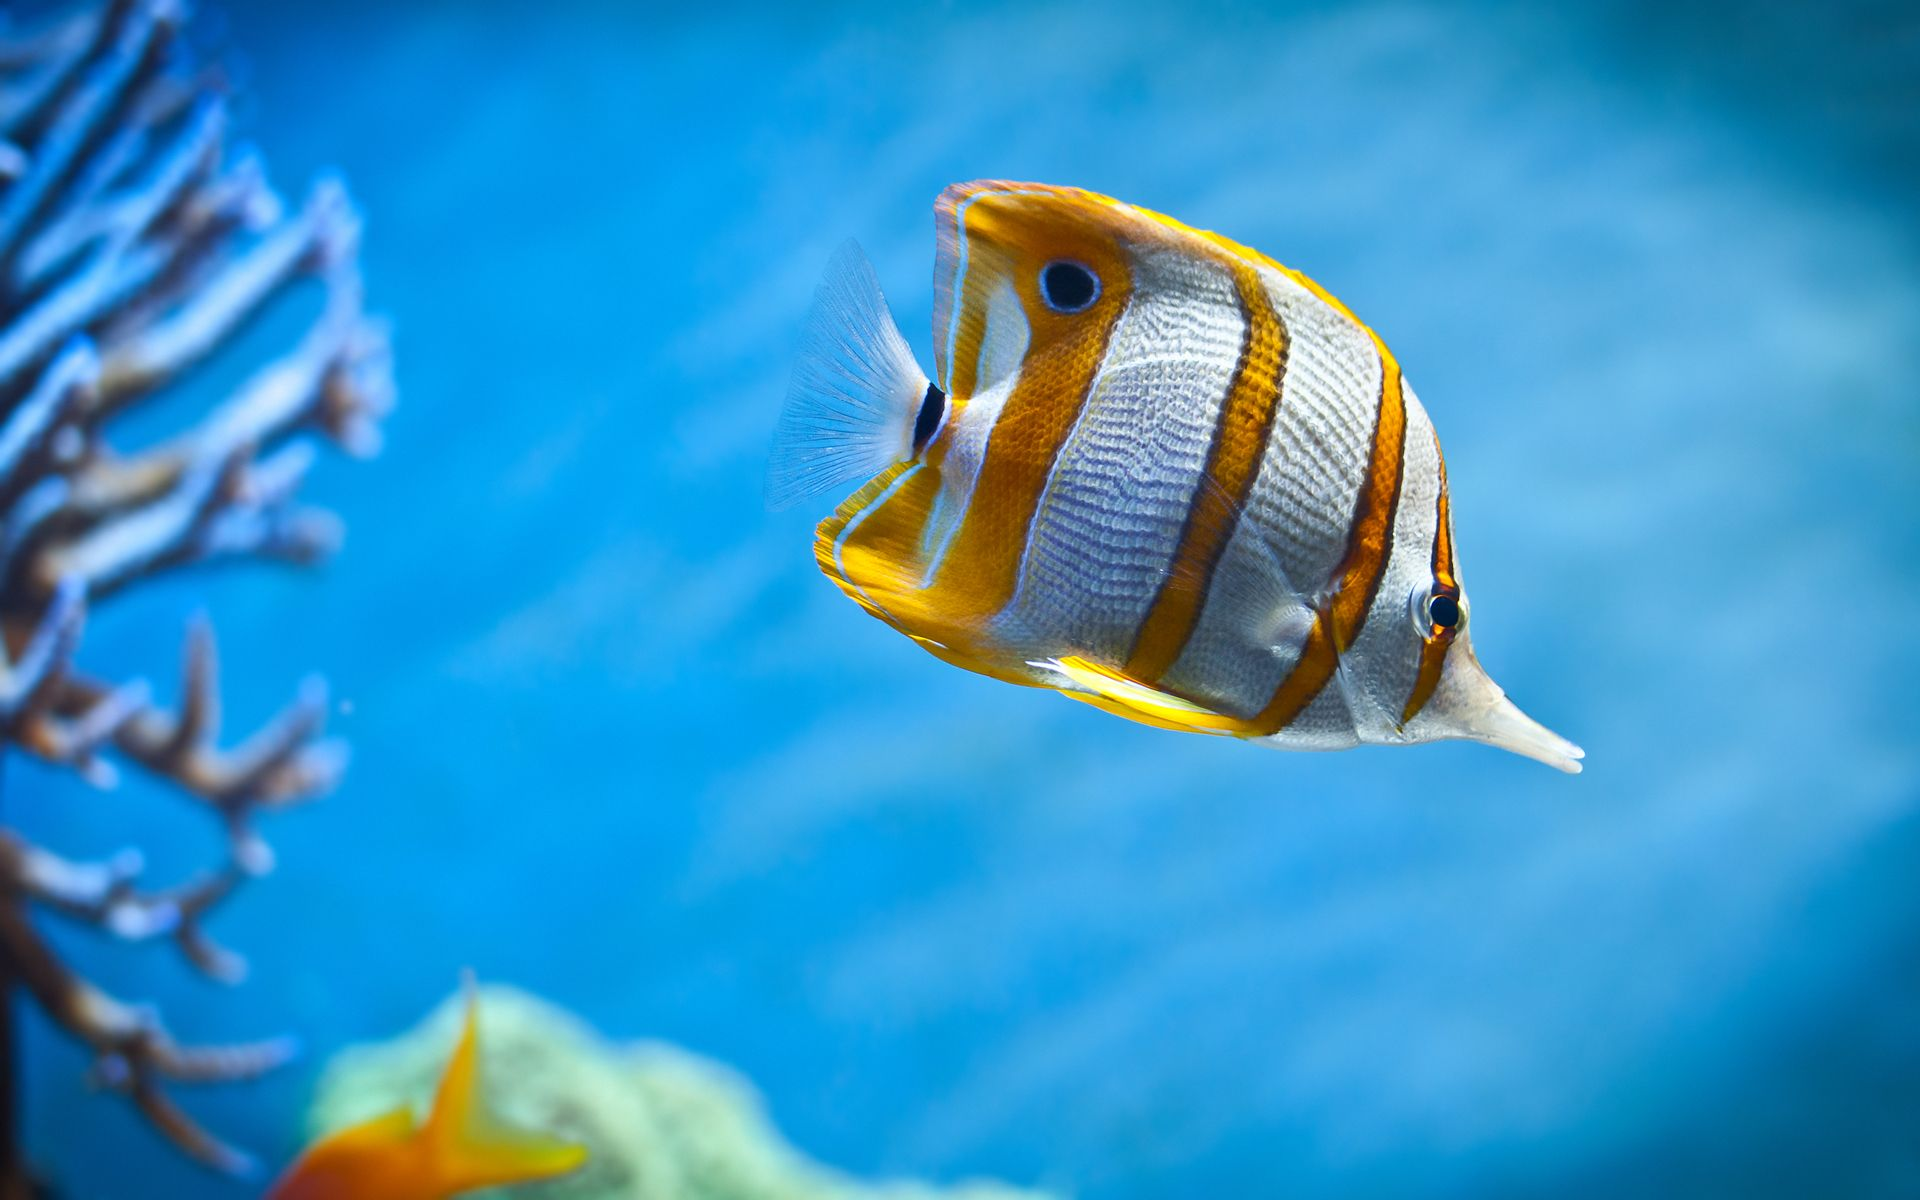 Colorful Fishes In The Sea Wallpaper Of Colorful Butterfly Fish Swimming In The Sea Click To Fish Wallpaper Underwater Animals Tropical Fish Aquarium